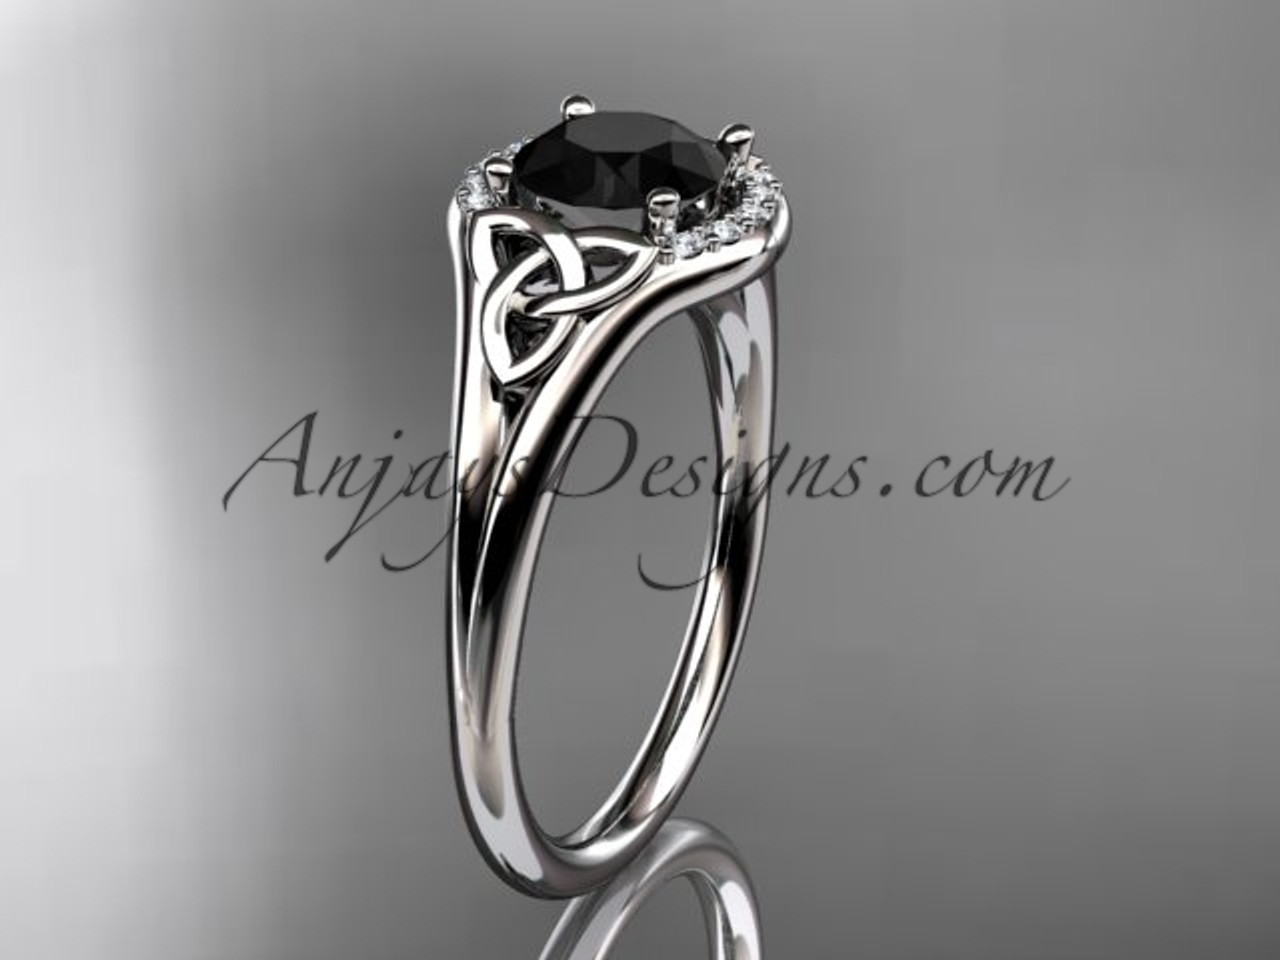 platinum celtic trinity knot engagement ring wedding ring with a black diamond center stone ct791 - Celtic Knot Wedding Rings